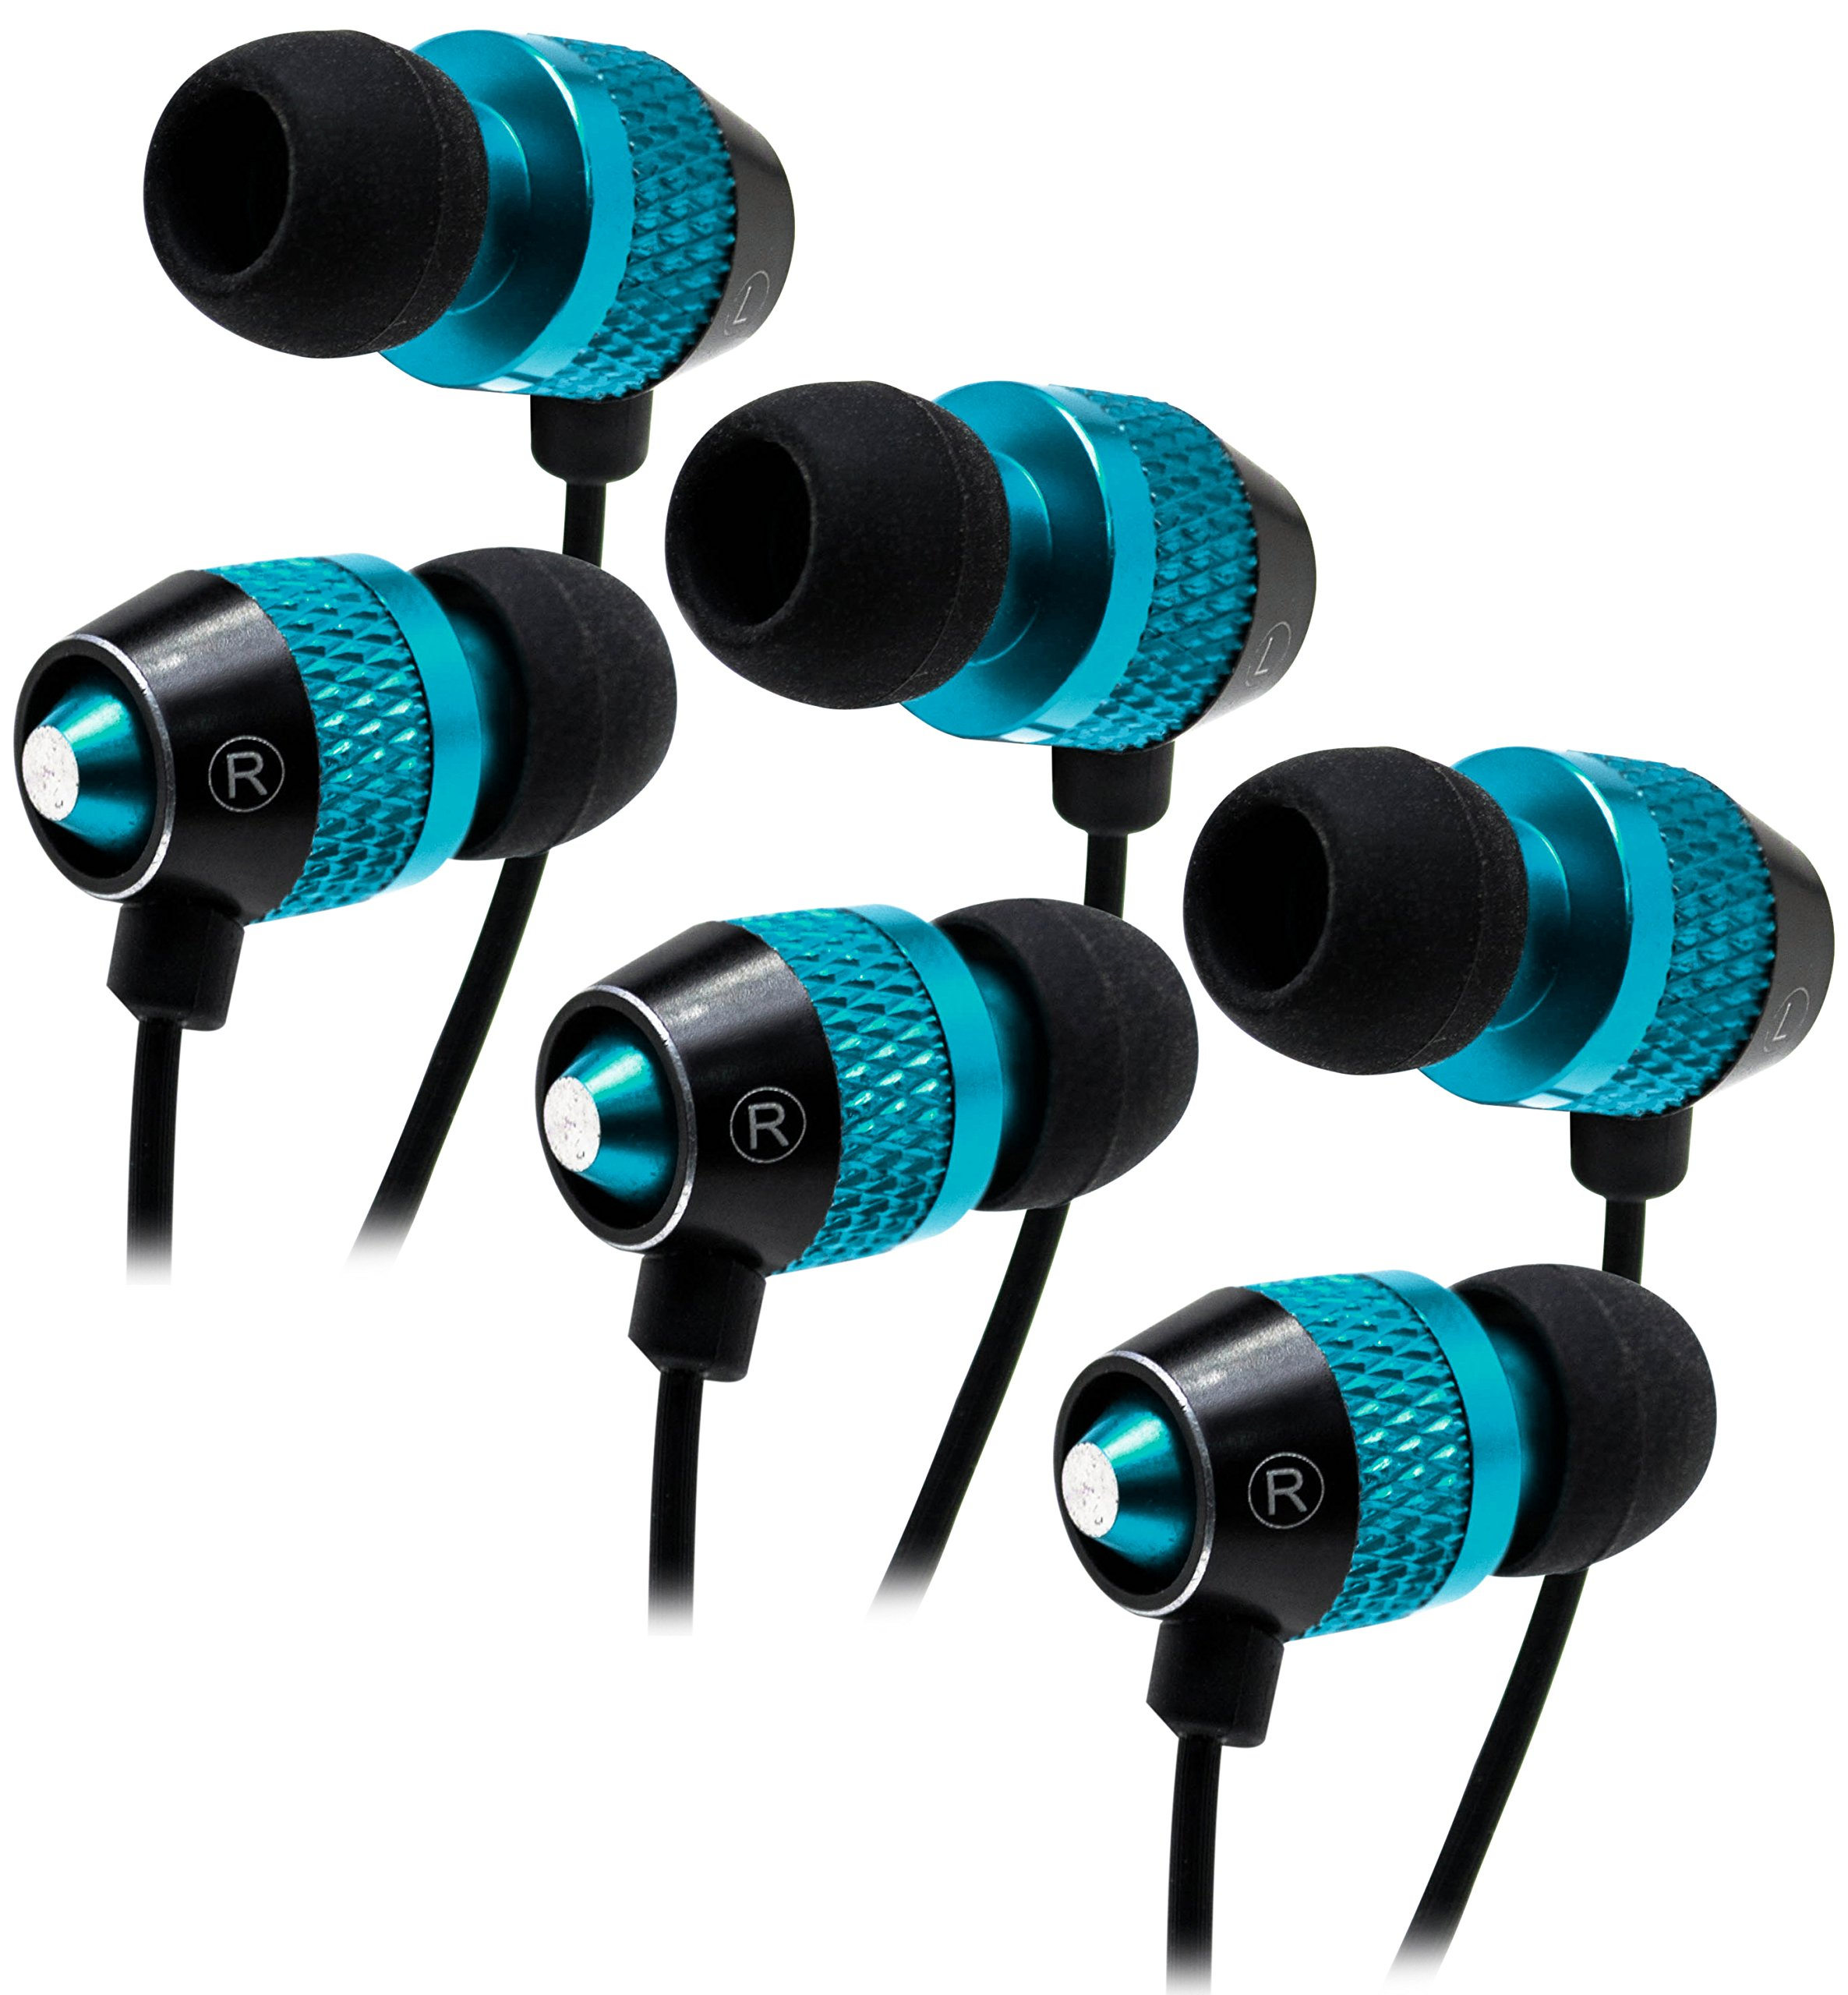 Bastex Universal Blue Earphone/Ear Buds (3 pk),3.5mm Plug, Bass Stereo Headphones in-Ear,Tangle Free Cable Built-in Microphone Earbuds iPhone iPod iPad Samsung Android Mp3 Mp4 More